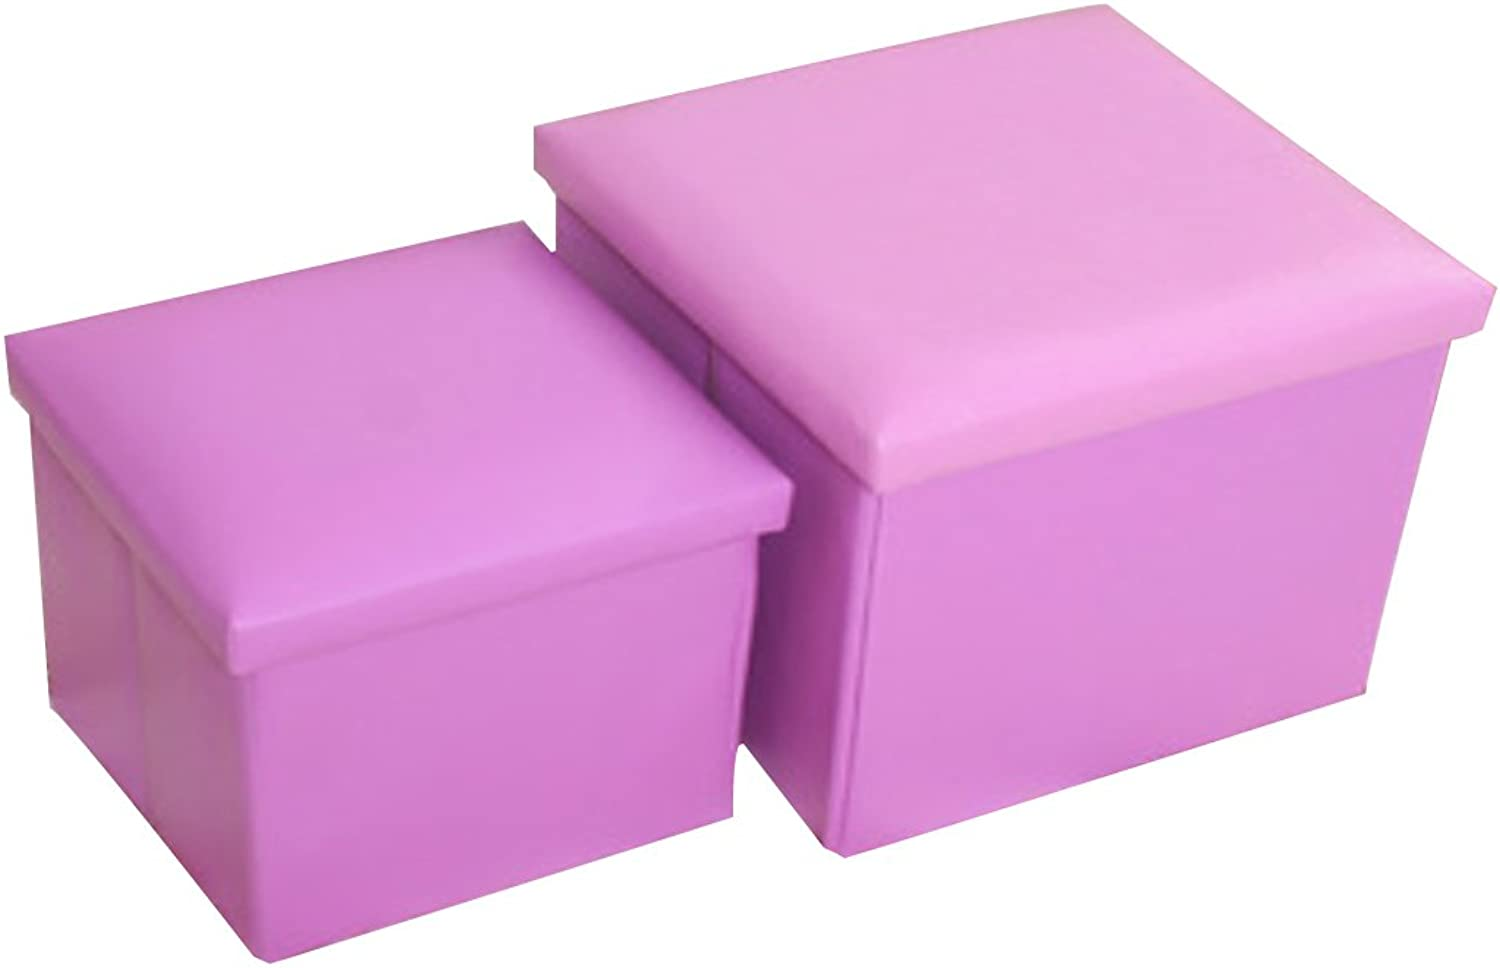 Storage Footstool Locker shoesbox Bed End Stool Sofa shoes Trying Stool (Purple, s)